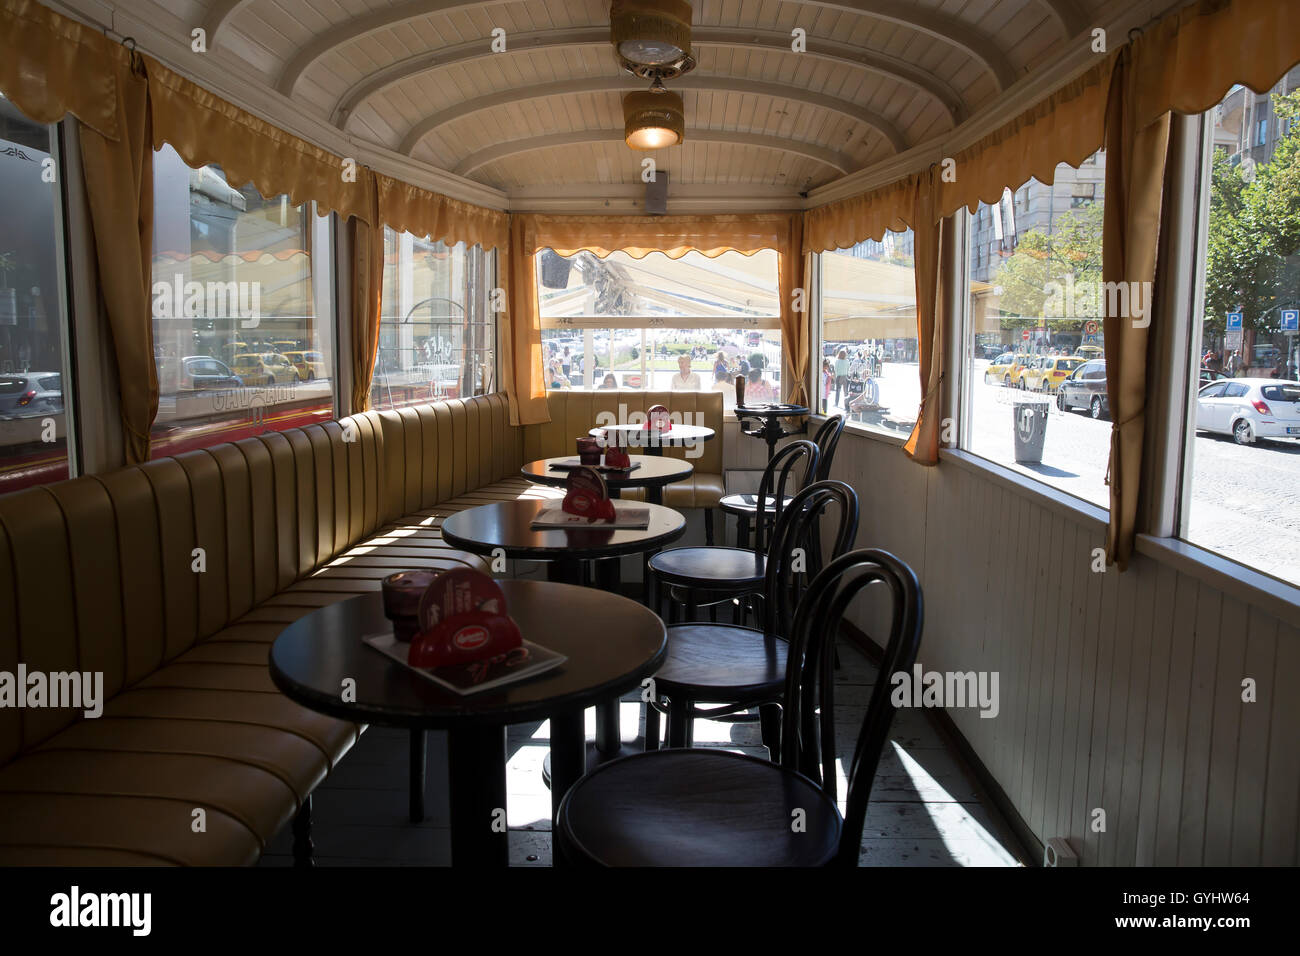 23eade9be647 The interior of an old tram which has been converted to a coffee shop in  Wenceslas Square Prague